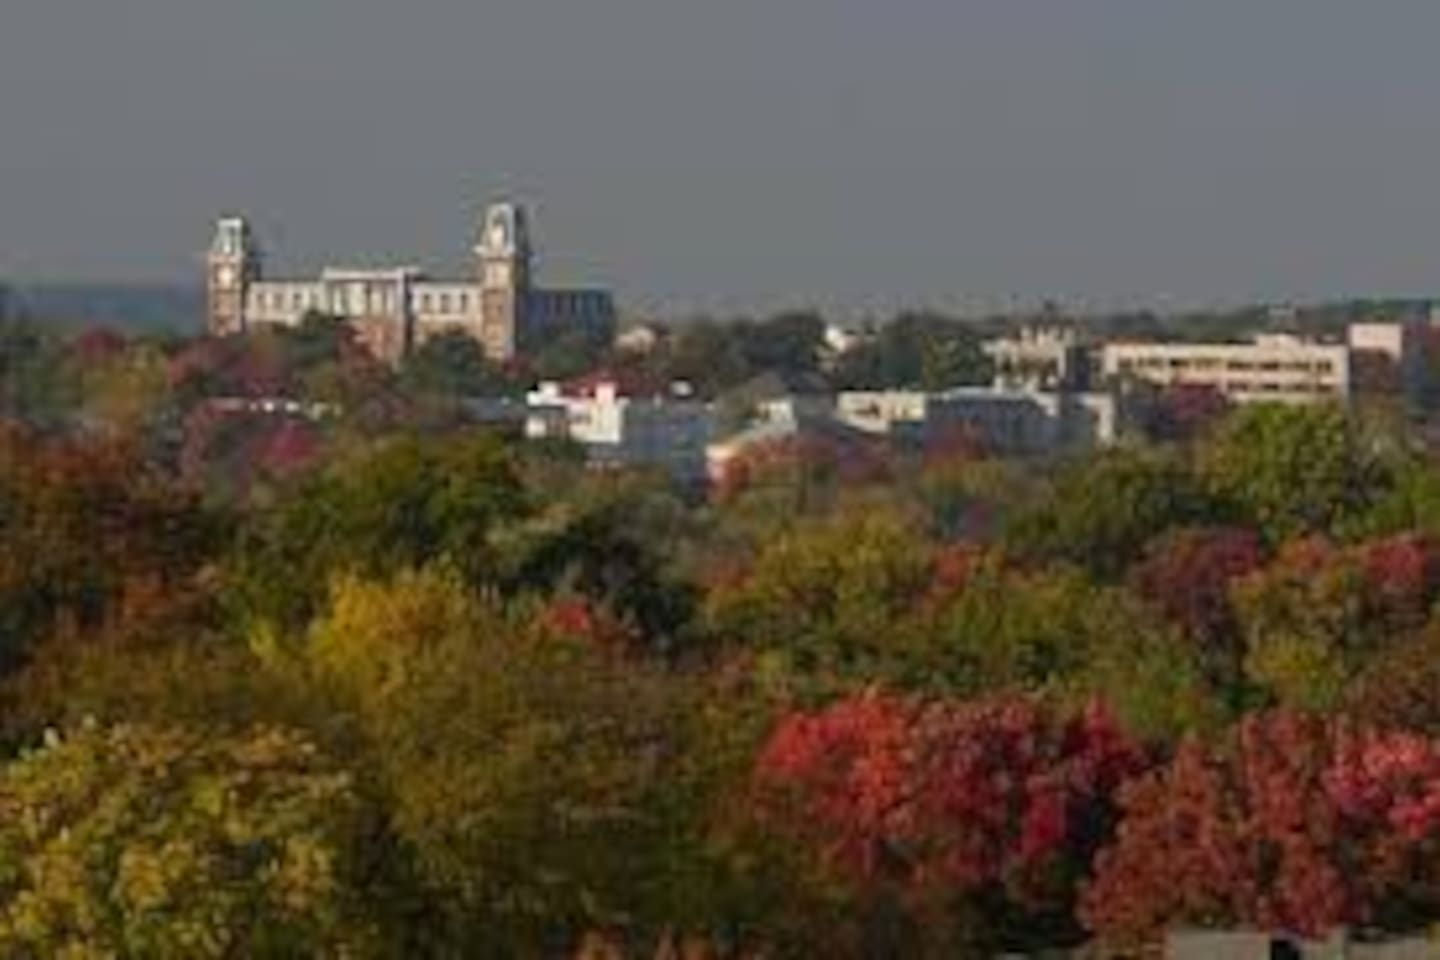 Not a view from the guesthouse, but Fayetteville is beautiful.